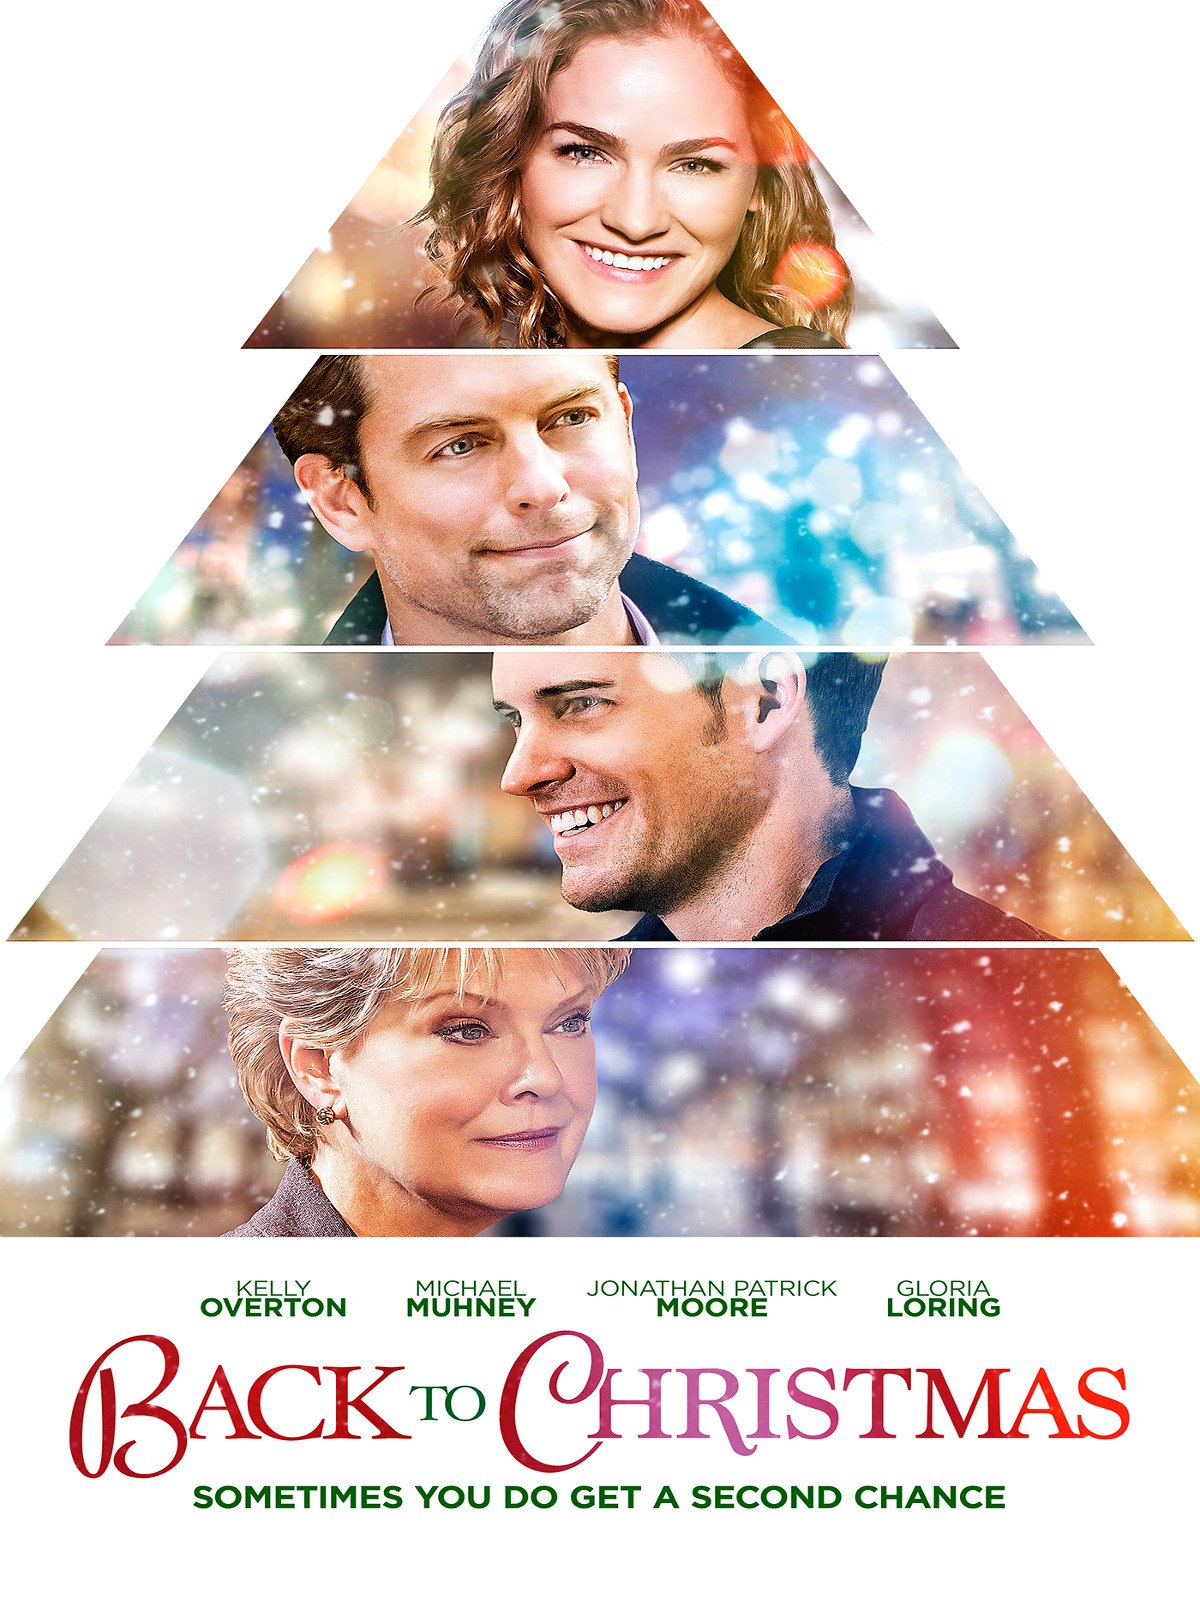 Amazon.com: Back to Christmas: Kelly Overton, Michael Muhney ...